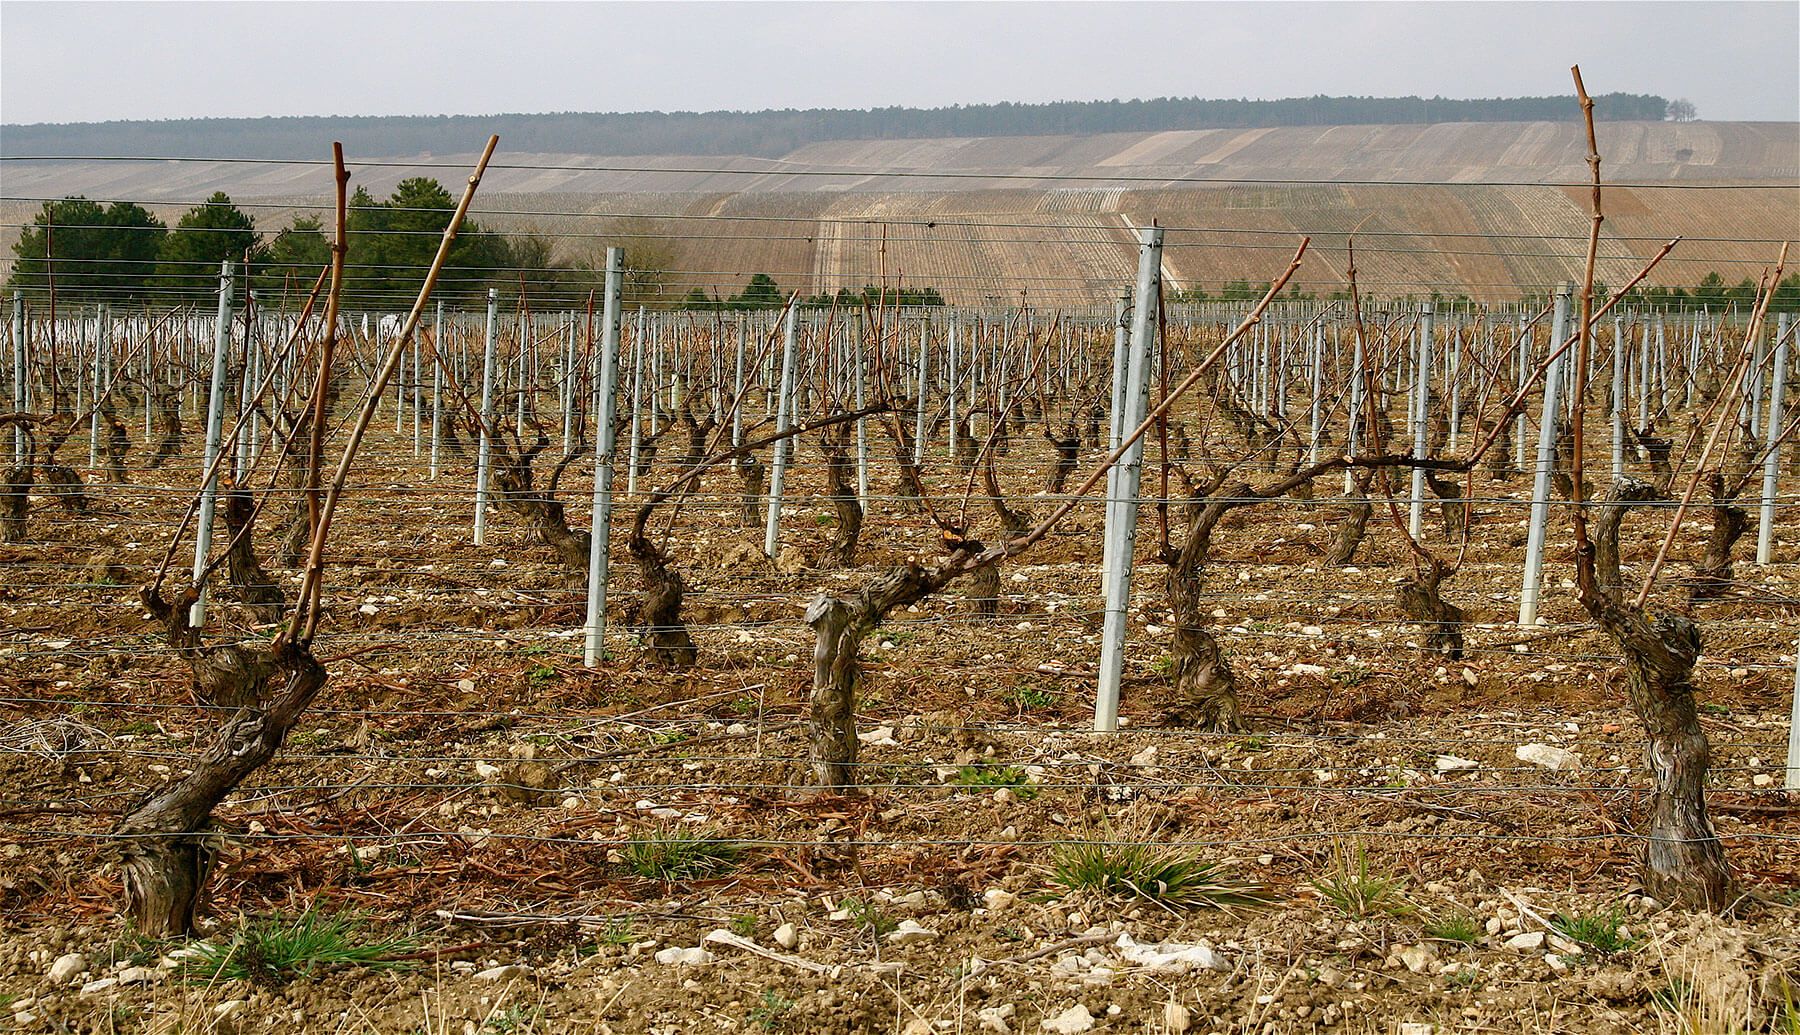 Vineyards near Chateau de Mailly